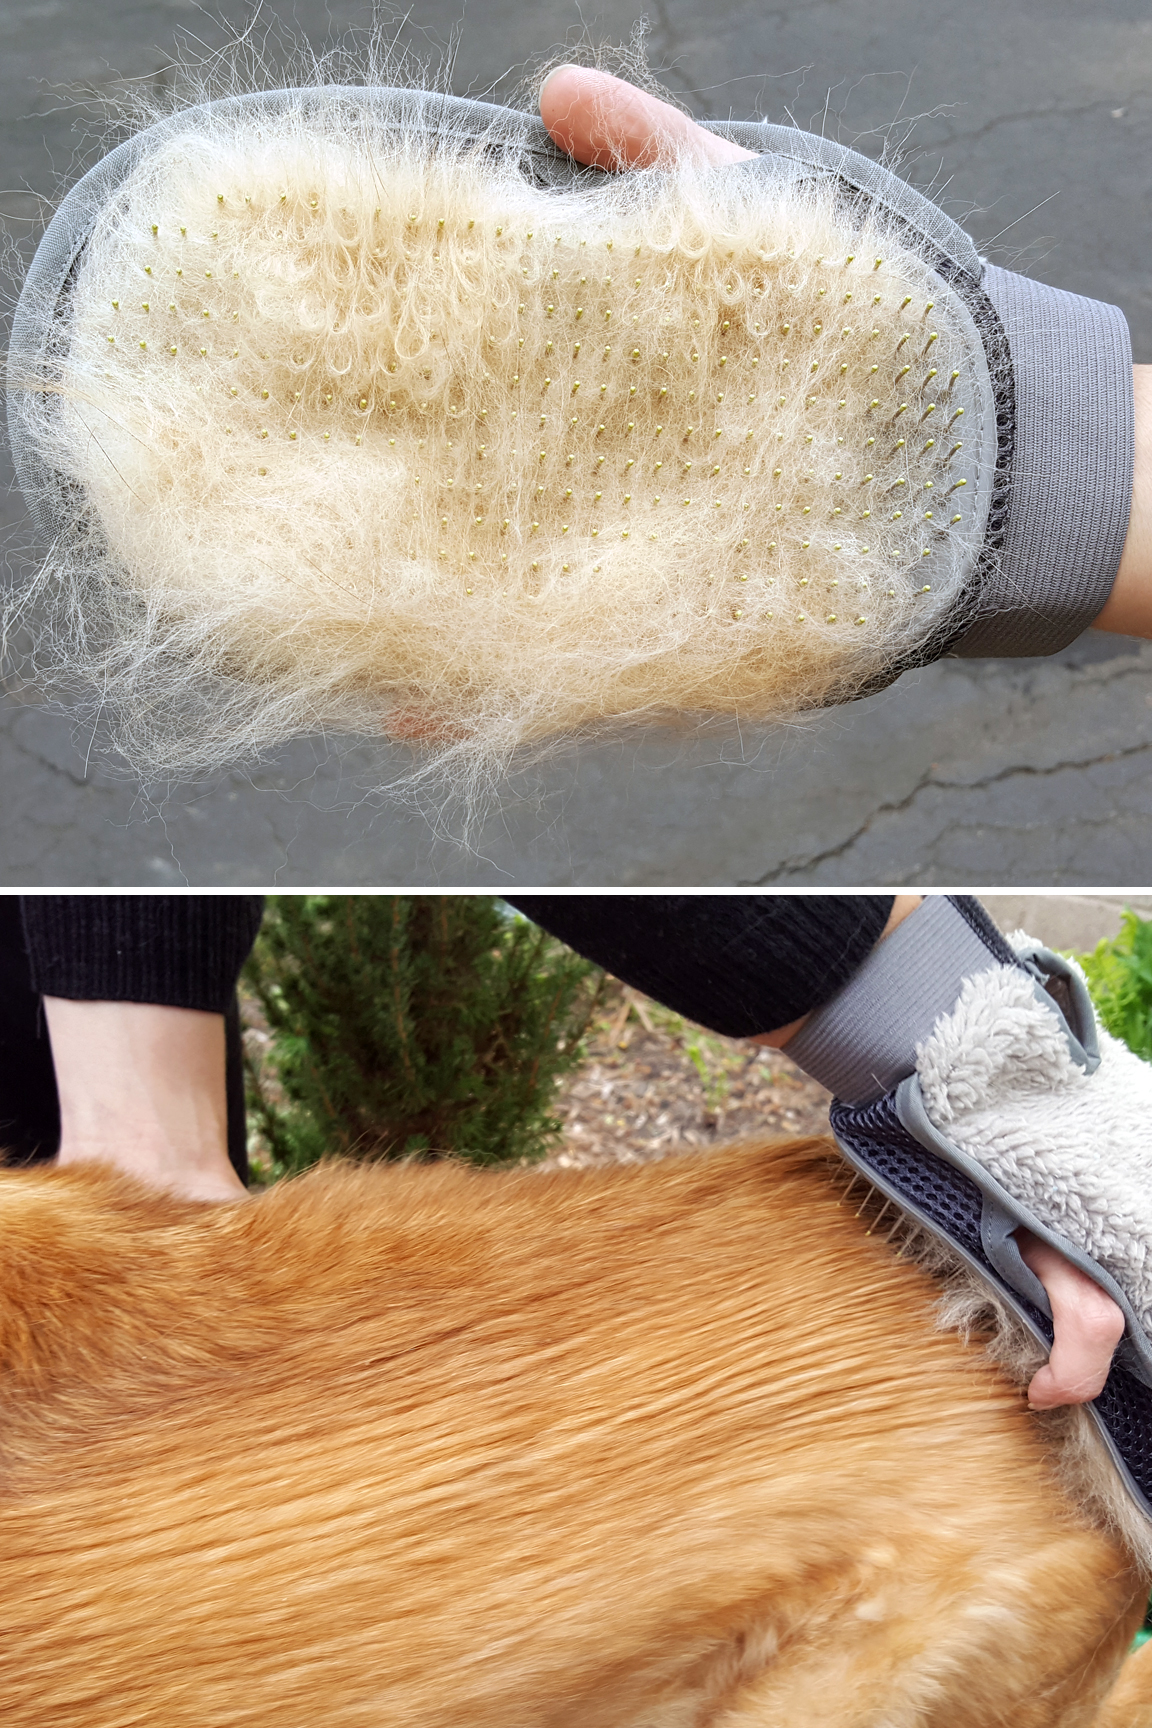 For medium or long-haired pets. Quickly groom dogs or cats like a pro.